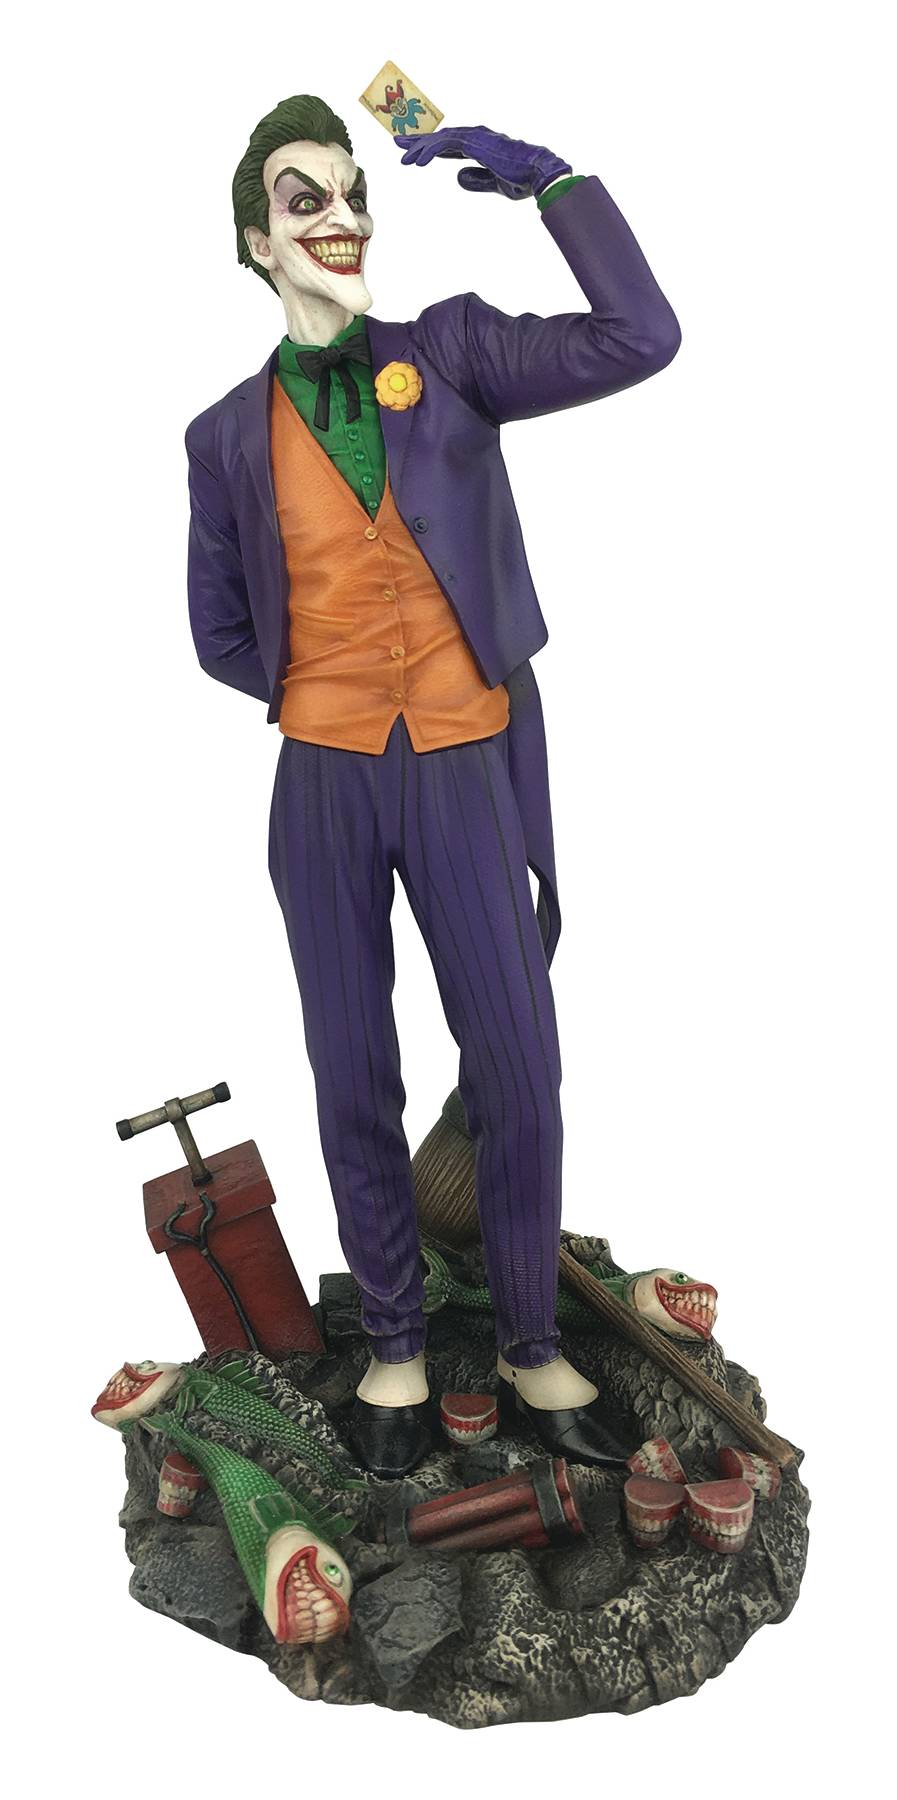 DC GALLERY JOKER COMIC PVC FIGURE